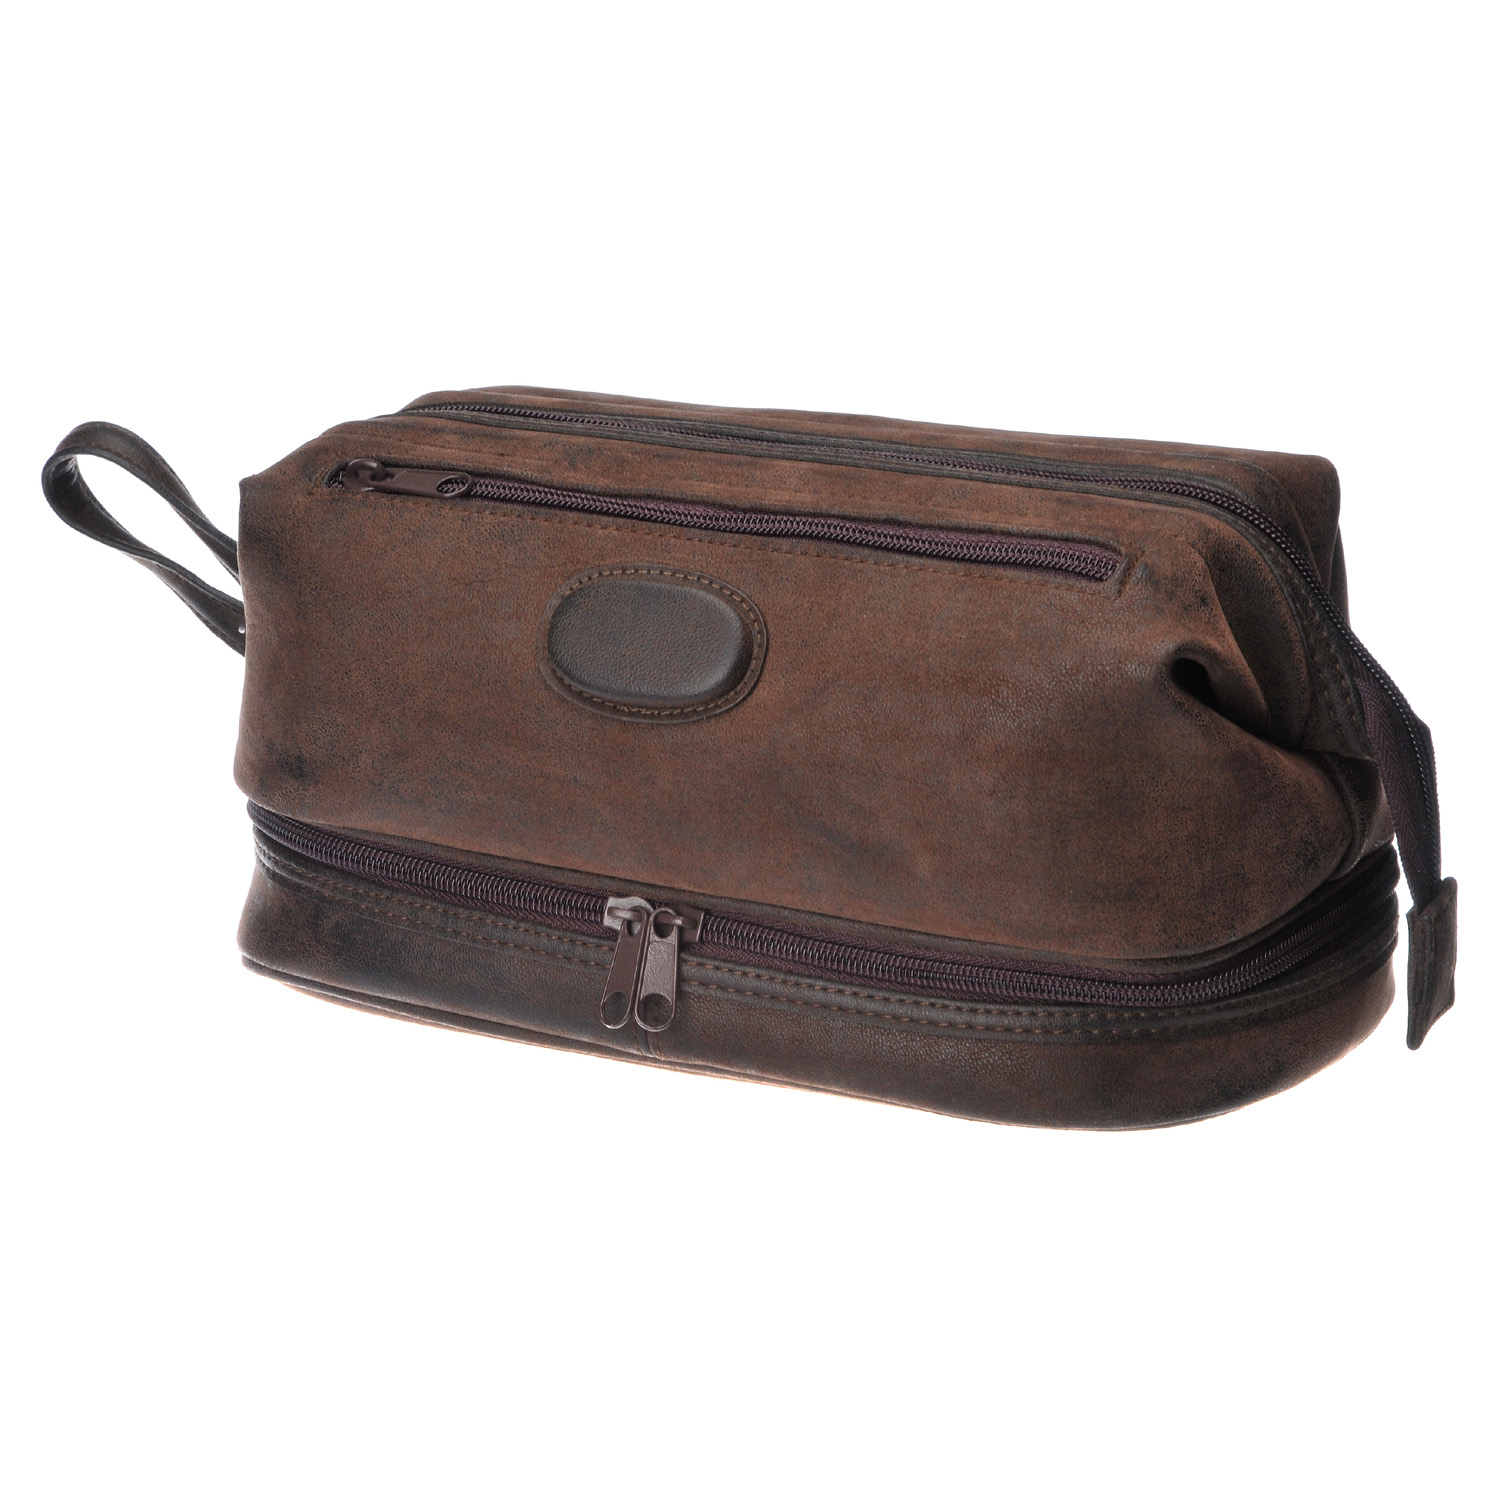 08ad4199602e Montana Wash Bag (Large)    Mens Toiletry   Wash Bags    Accessories    The  Shaving Shack